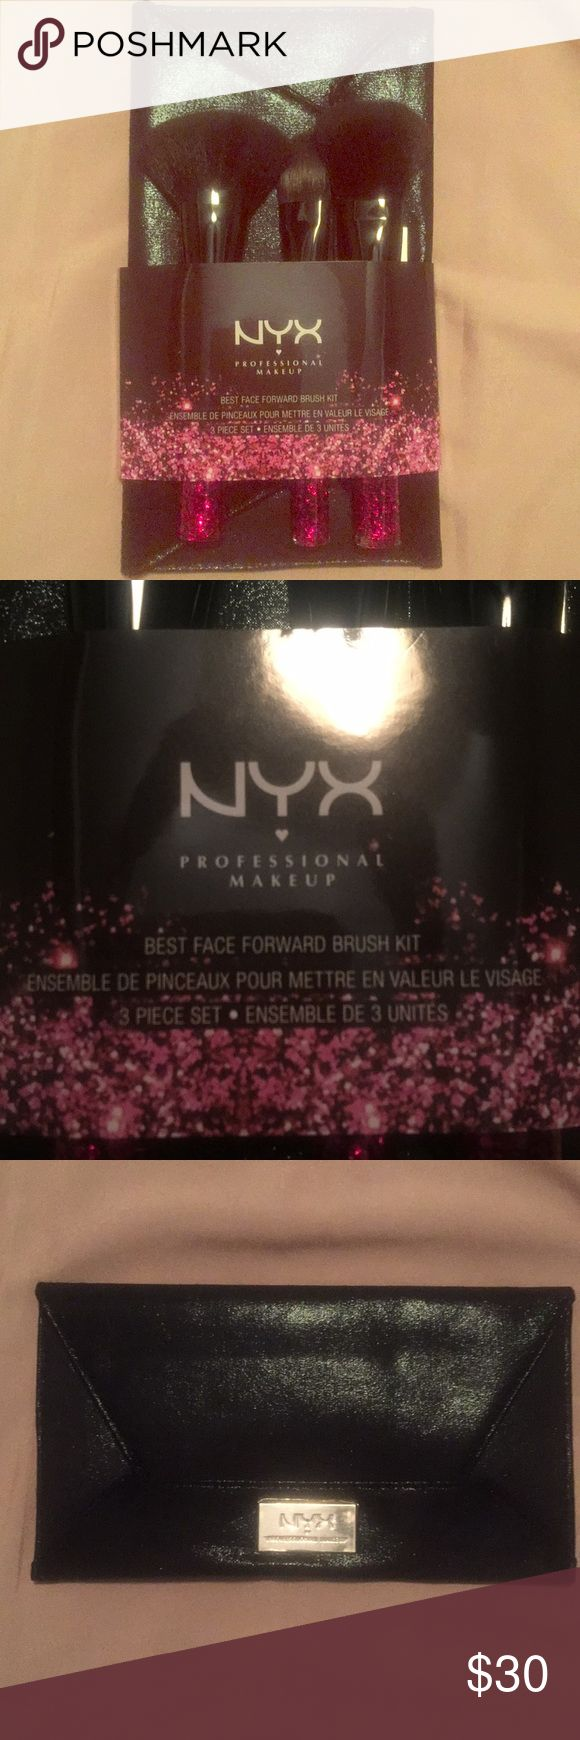 NYX best face forward makeup brush set Limited edition 3 piece makeup brush set for flawless looking makeup. Includes the pro, powder and flat foundation brushes. All brushes have glittery pink handles. Comes with black storage pouch. NYX Cosmetics Makeup Brushes & Tools #Bestmakeupbrushes&tools #flawlessmakeup